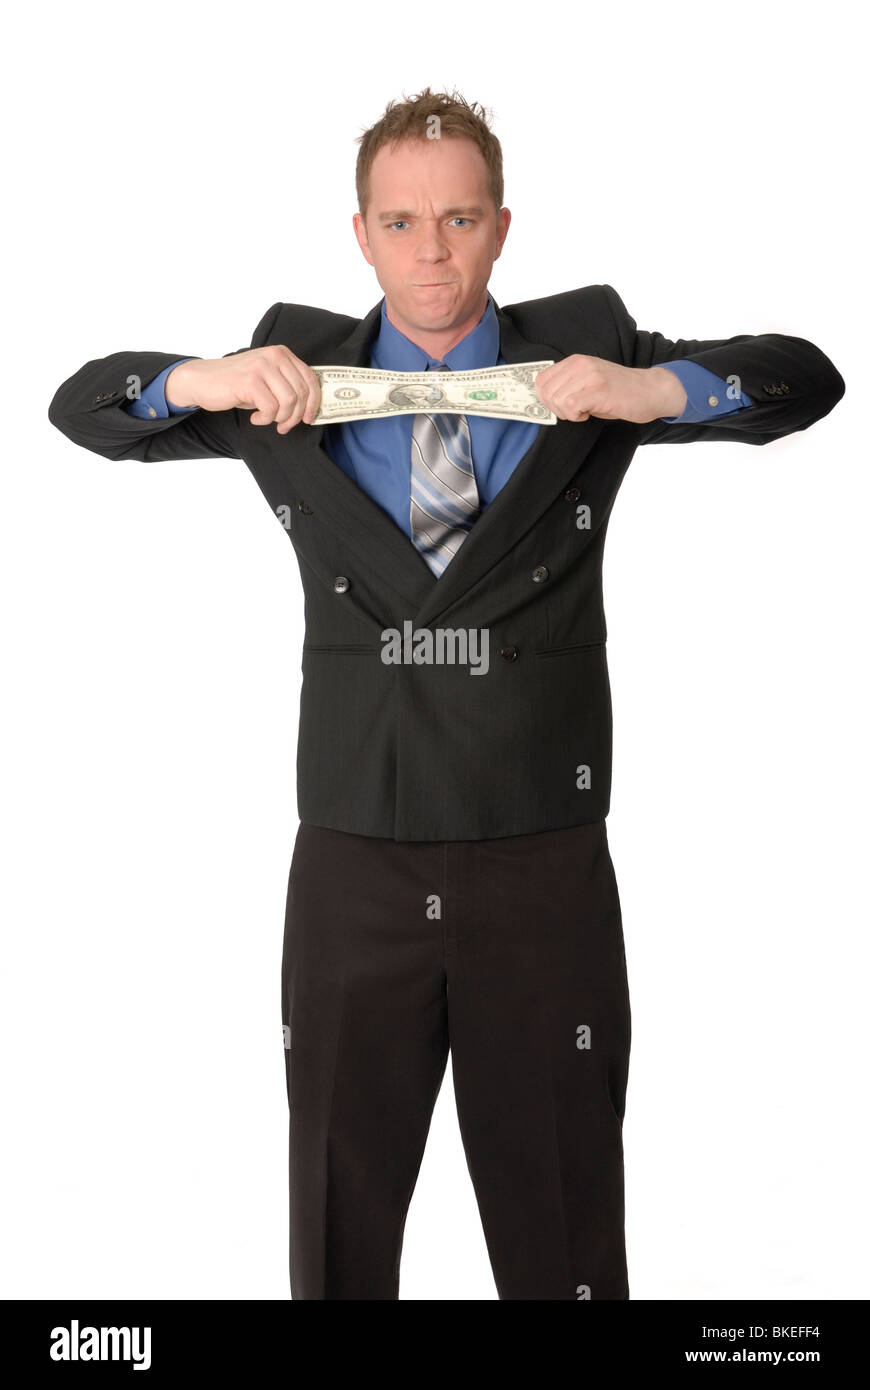 Man stretching a dollar. - Stock Image